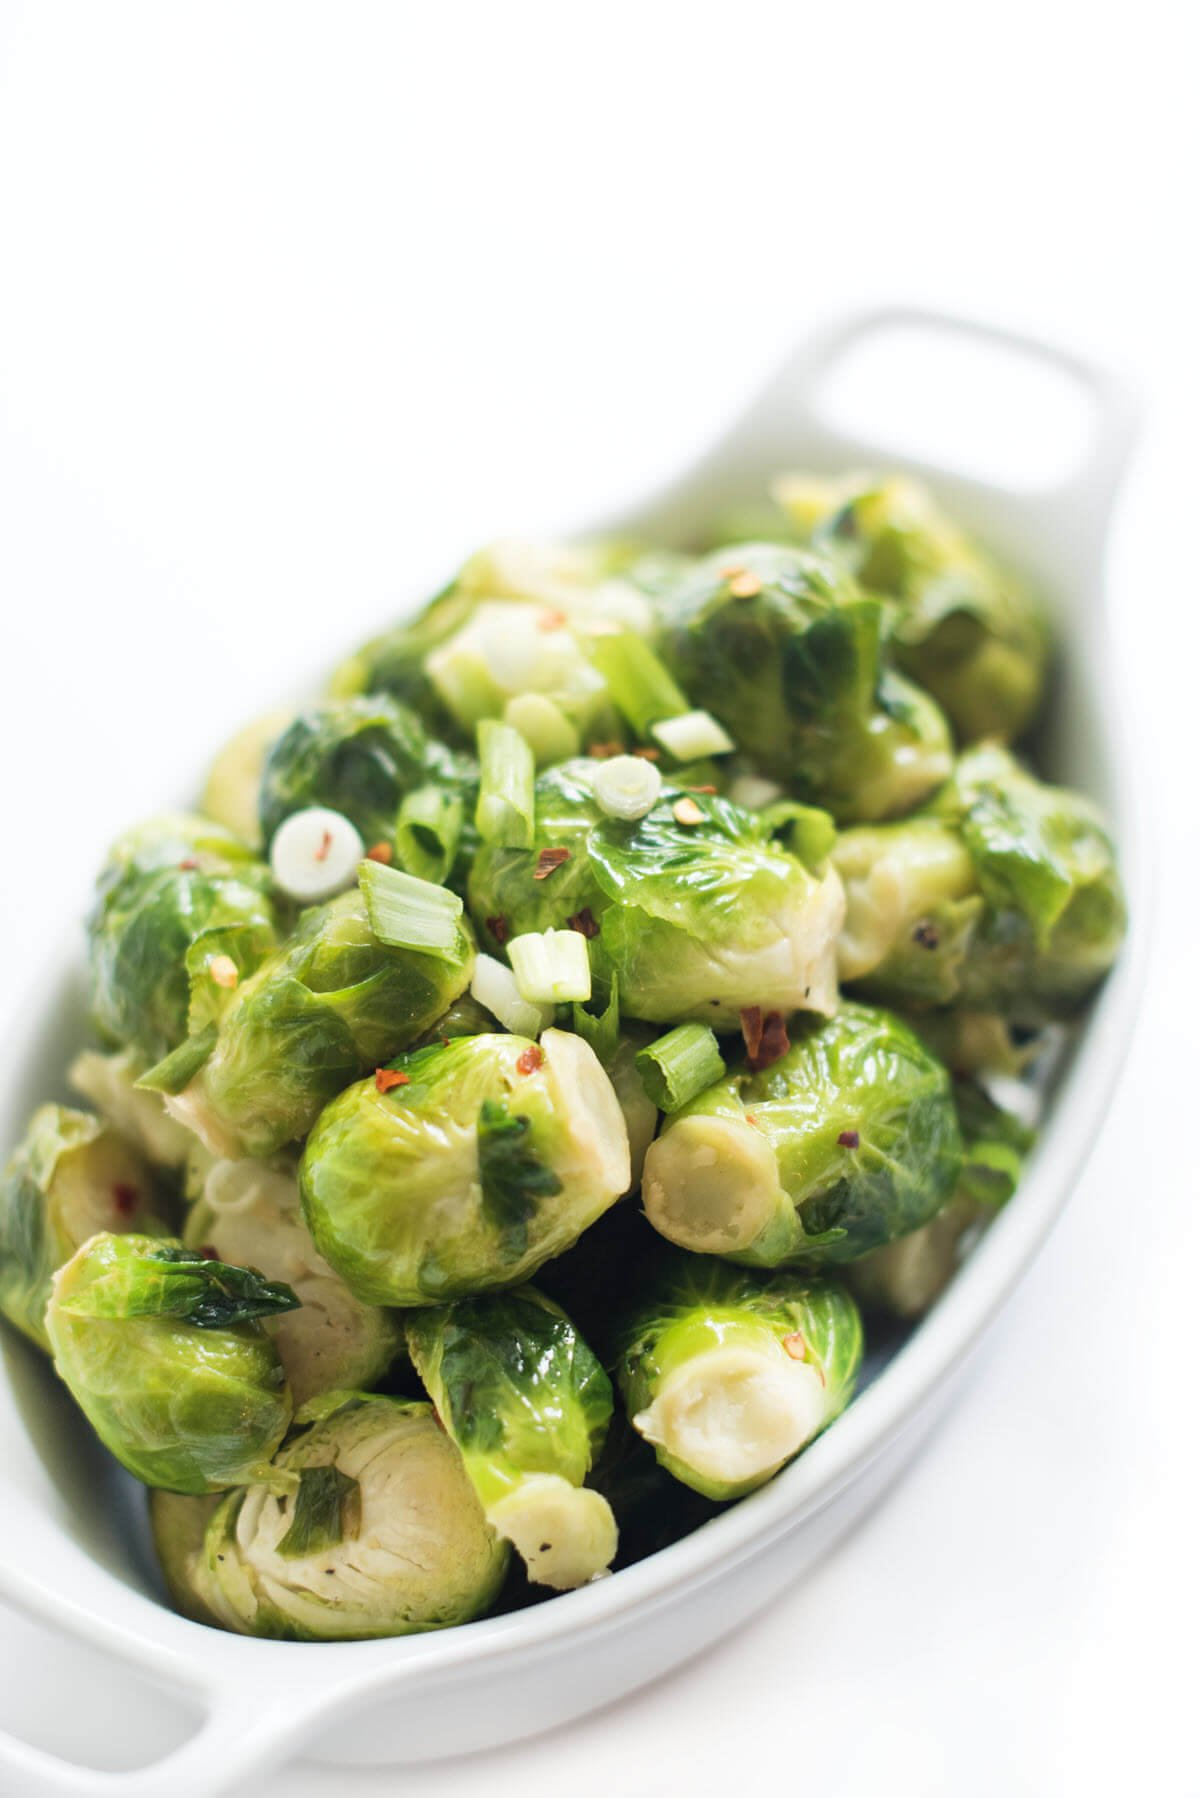 steamed brussels sprouts in a bowl